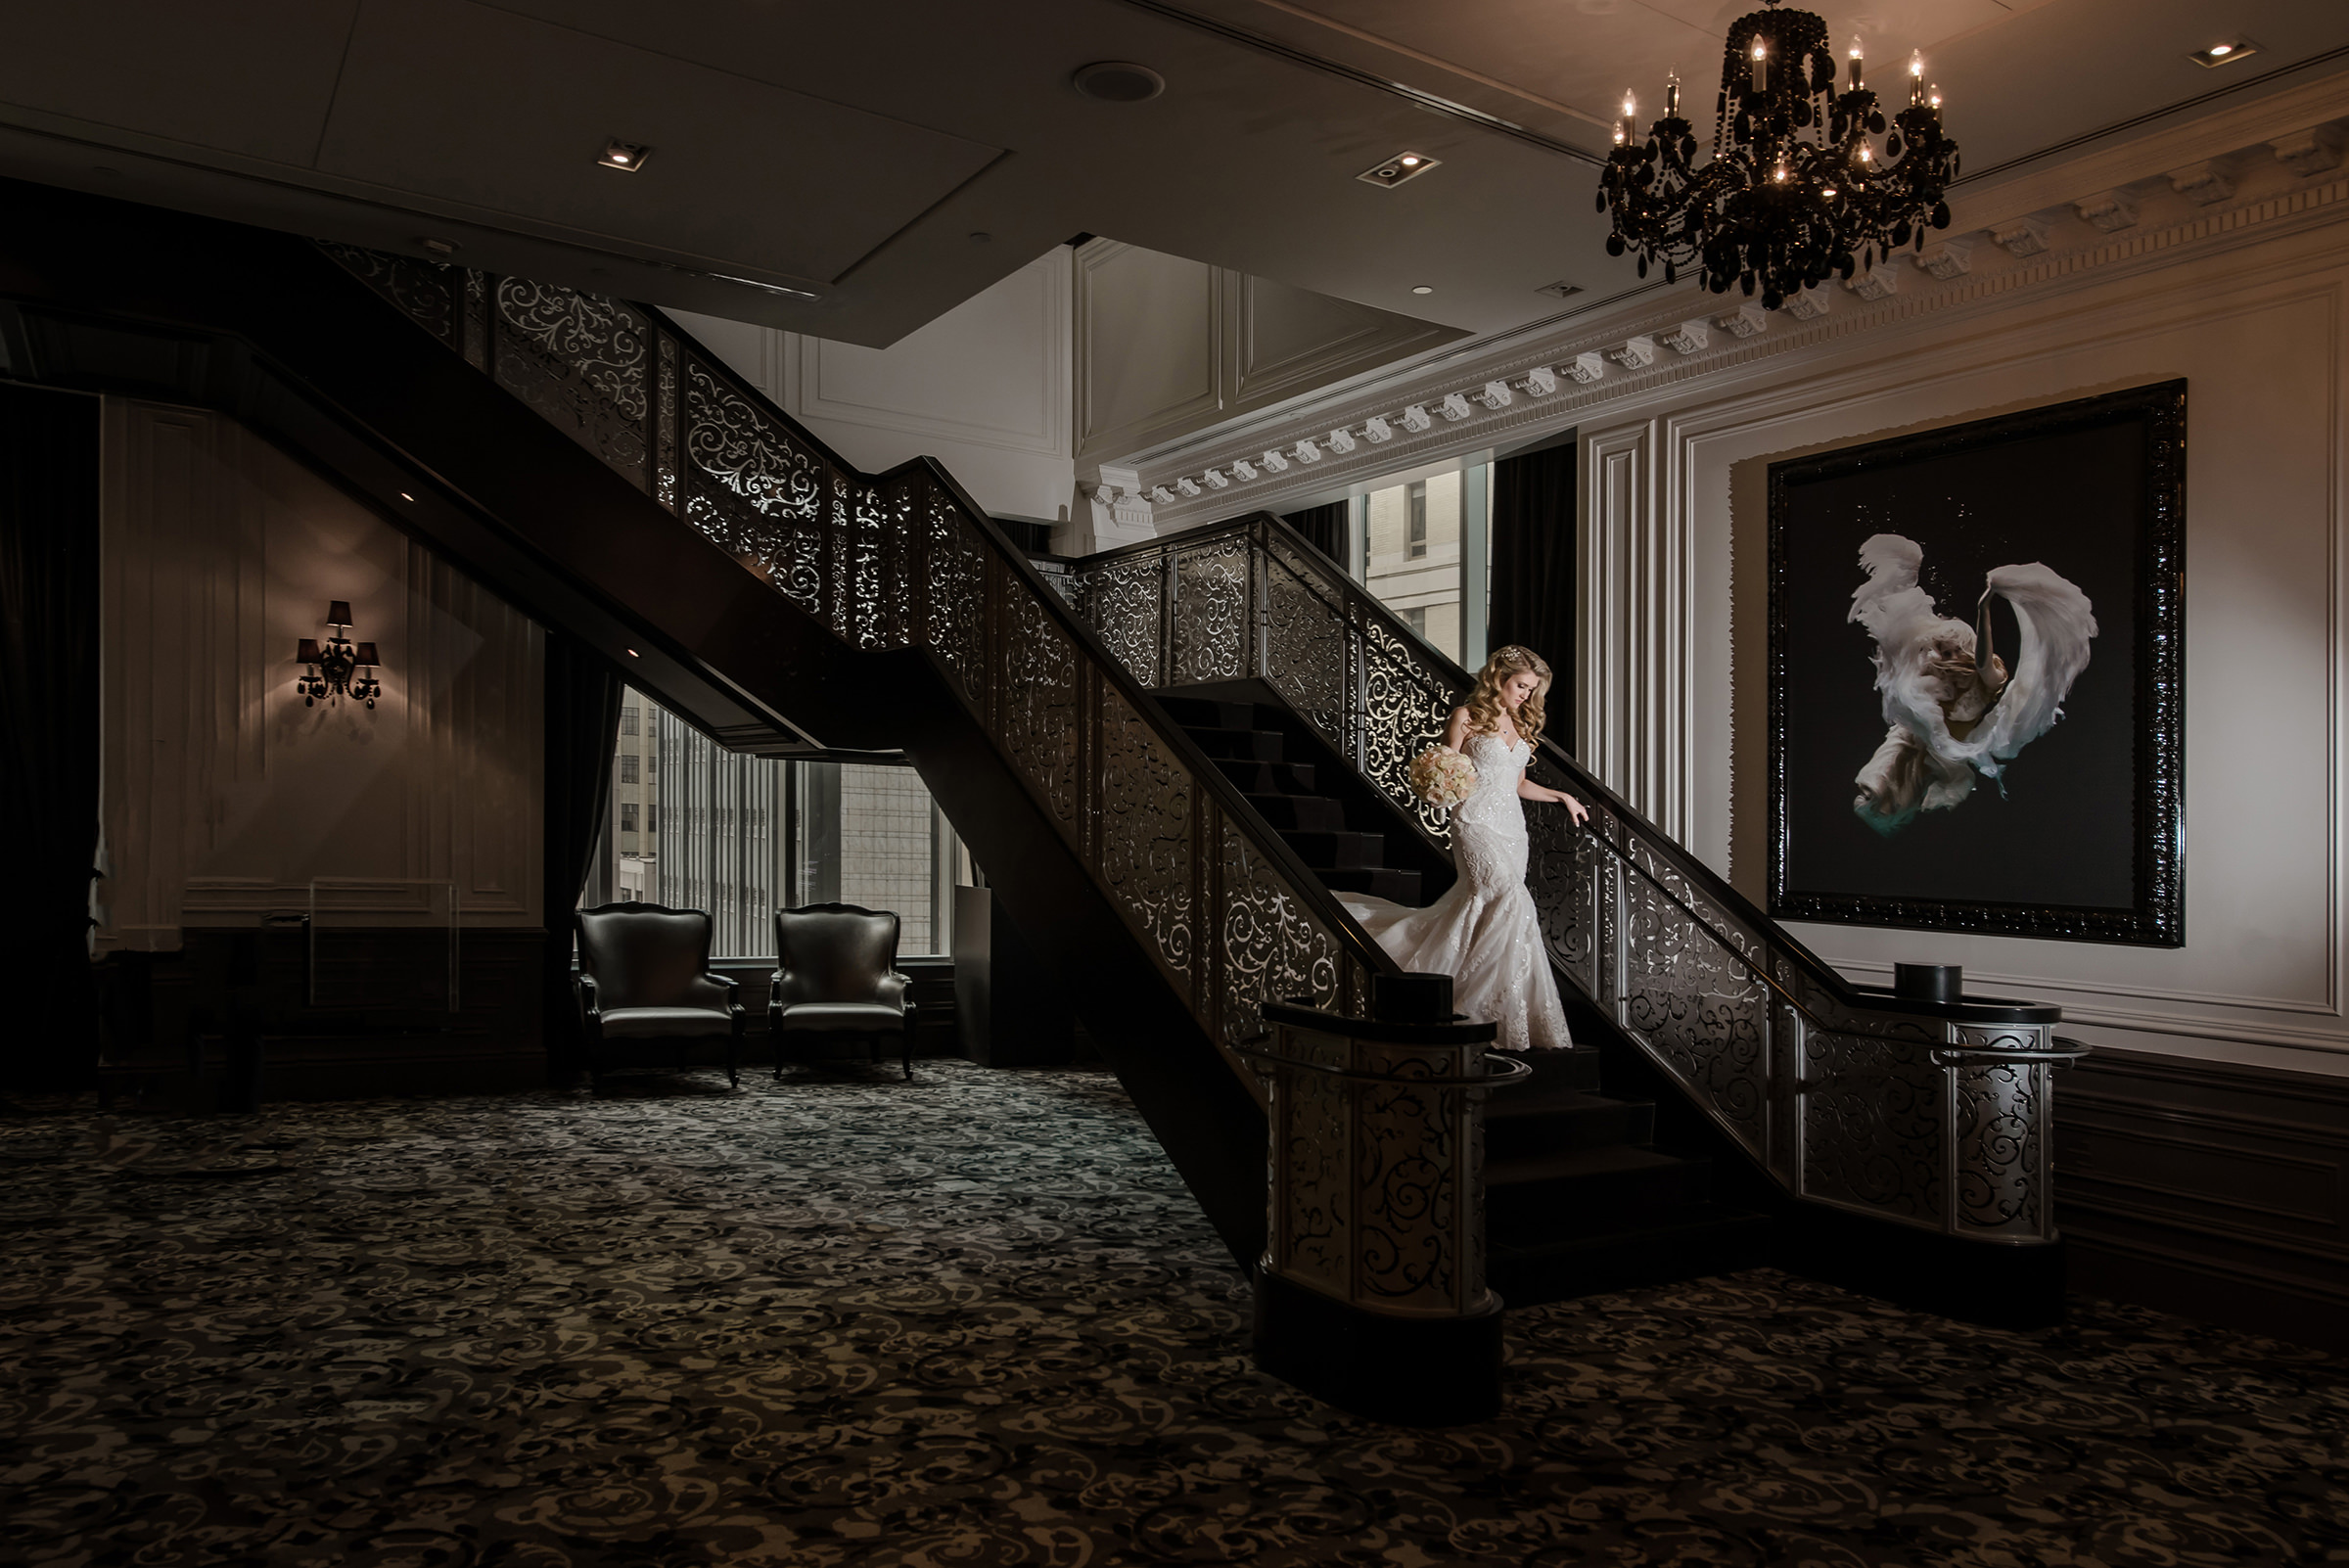 bride-in-trumpet-gown-descending-ornate-staircase-david-sherry-photography